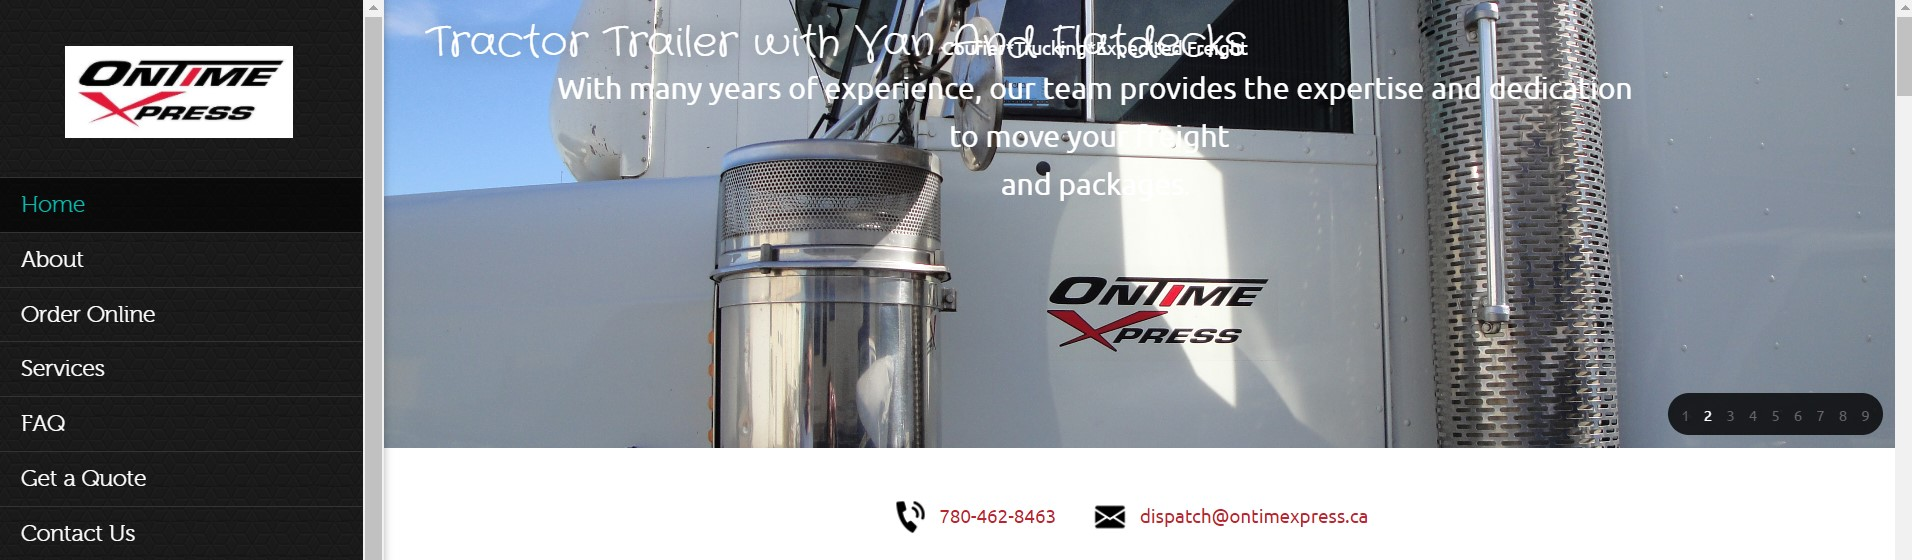 on time xpress courier service in edmonton